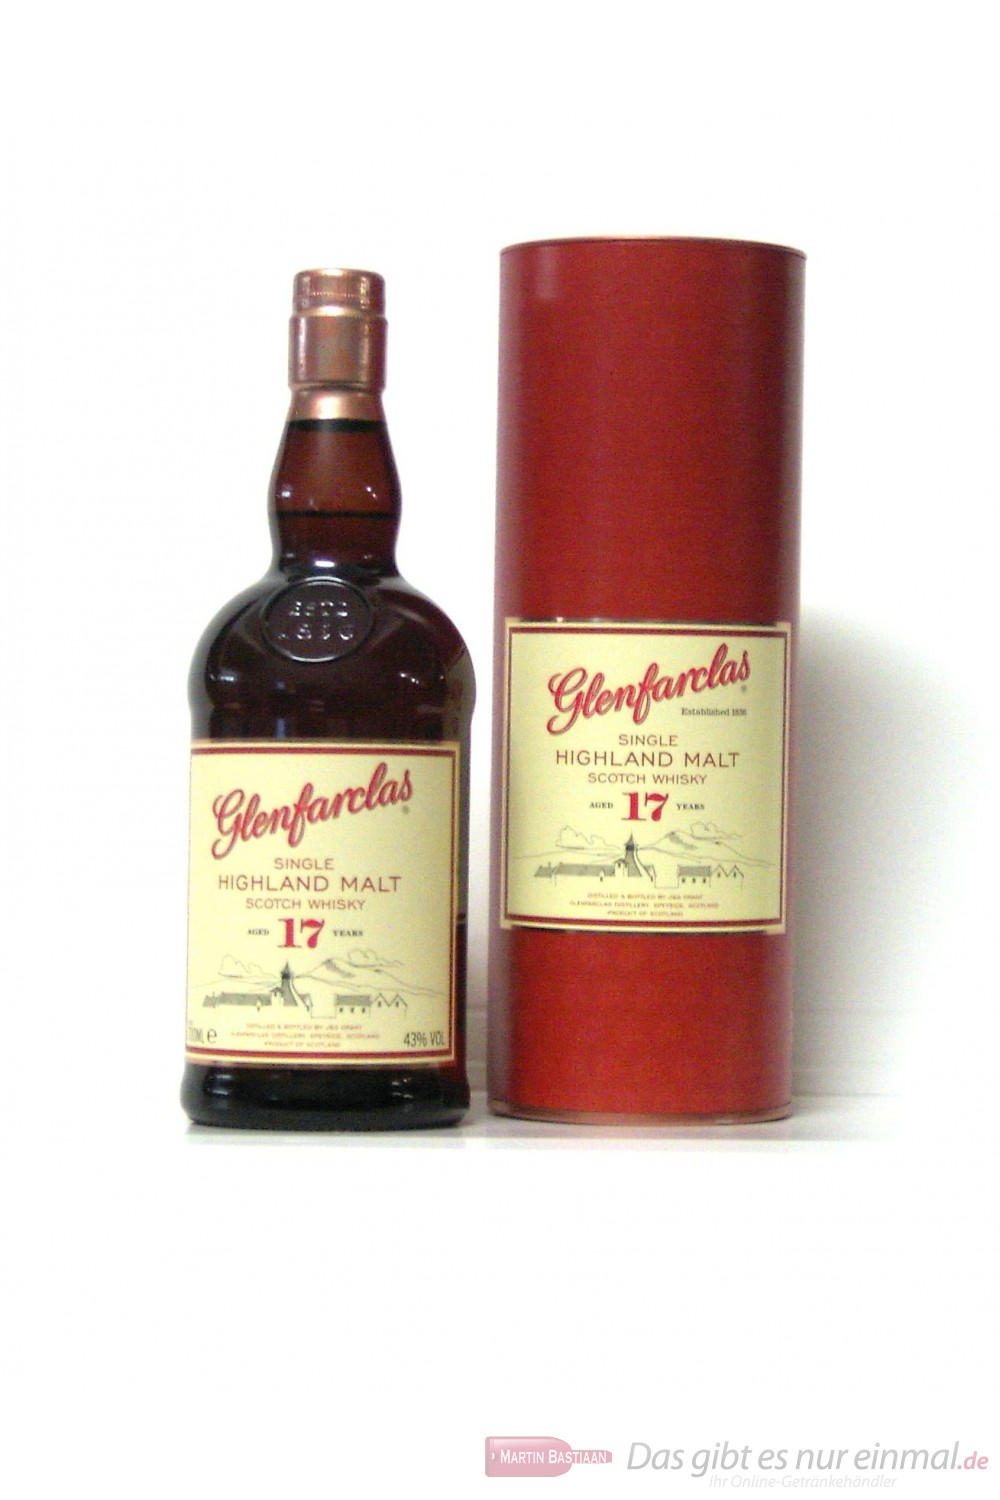 Glenfarclas 17 Years Single Highland Malt Scotch Whisky 43% 0,7l Flasche